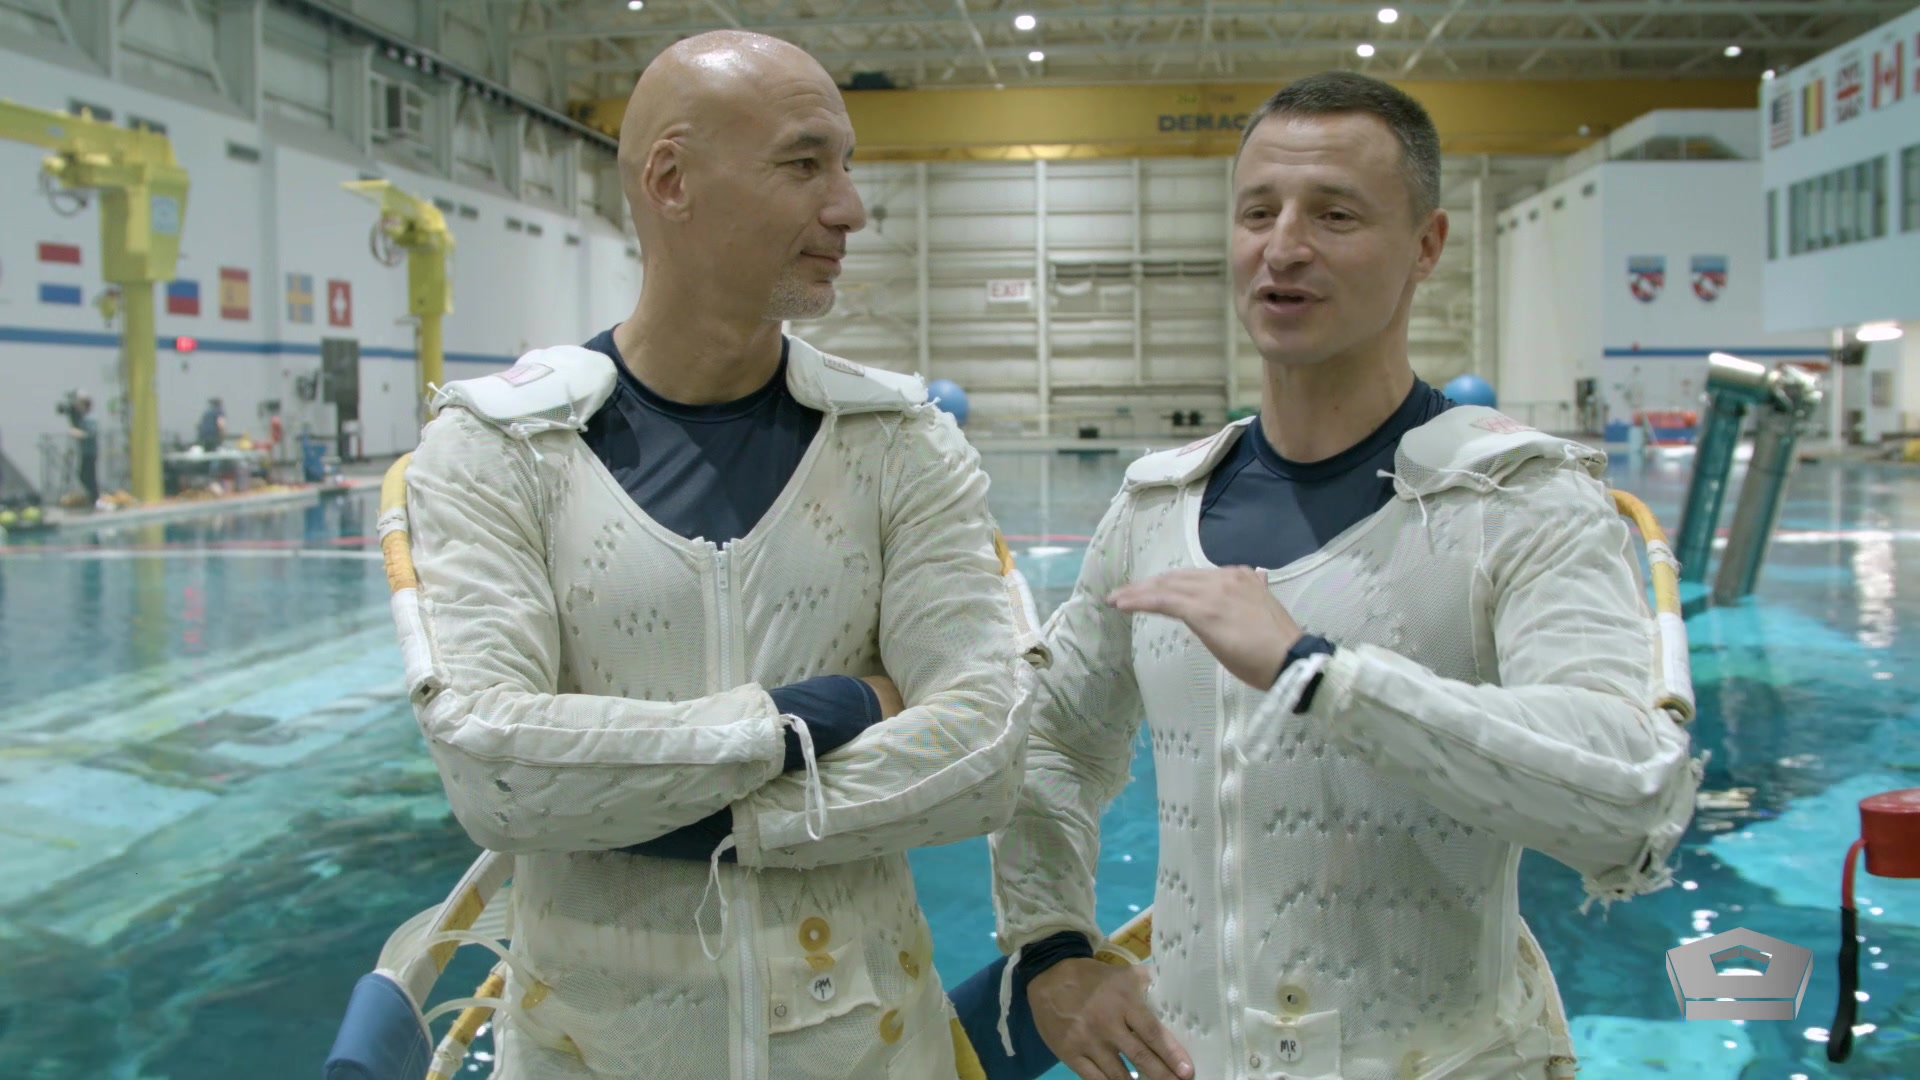 Two astronauts are stand in front of a pool.